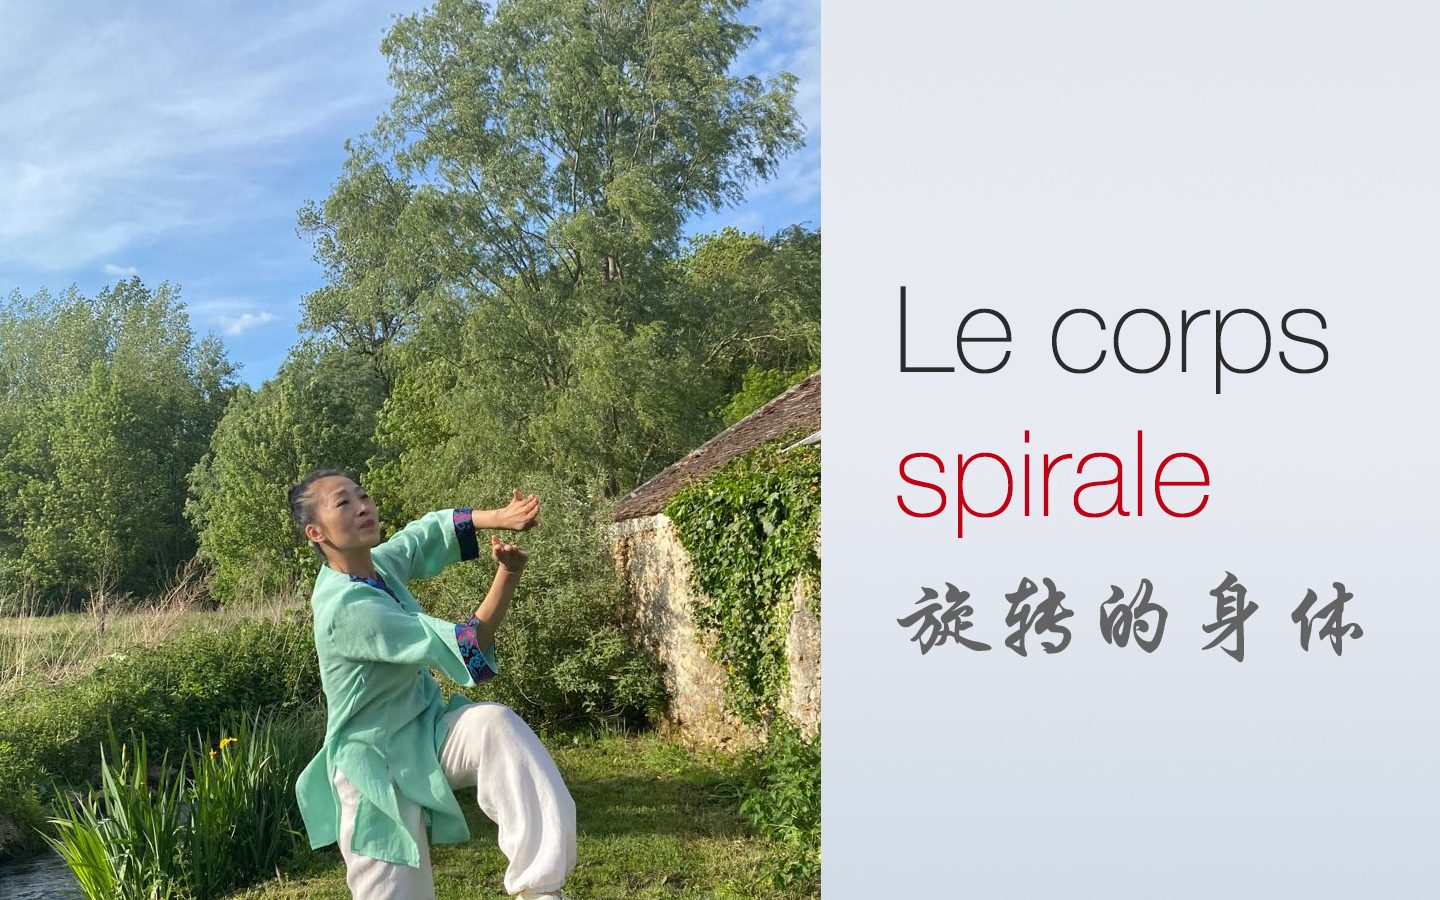 Le corps spirale